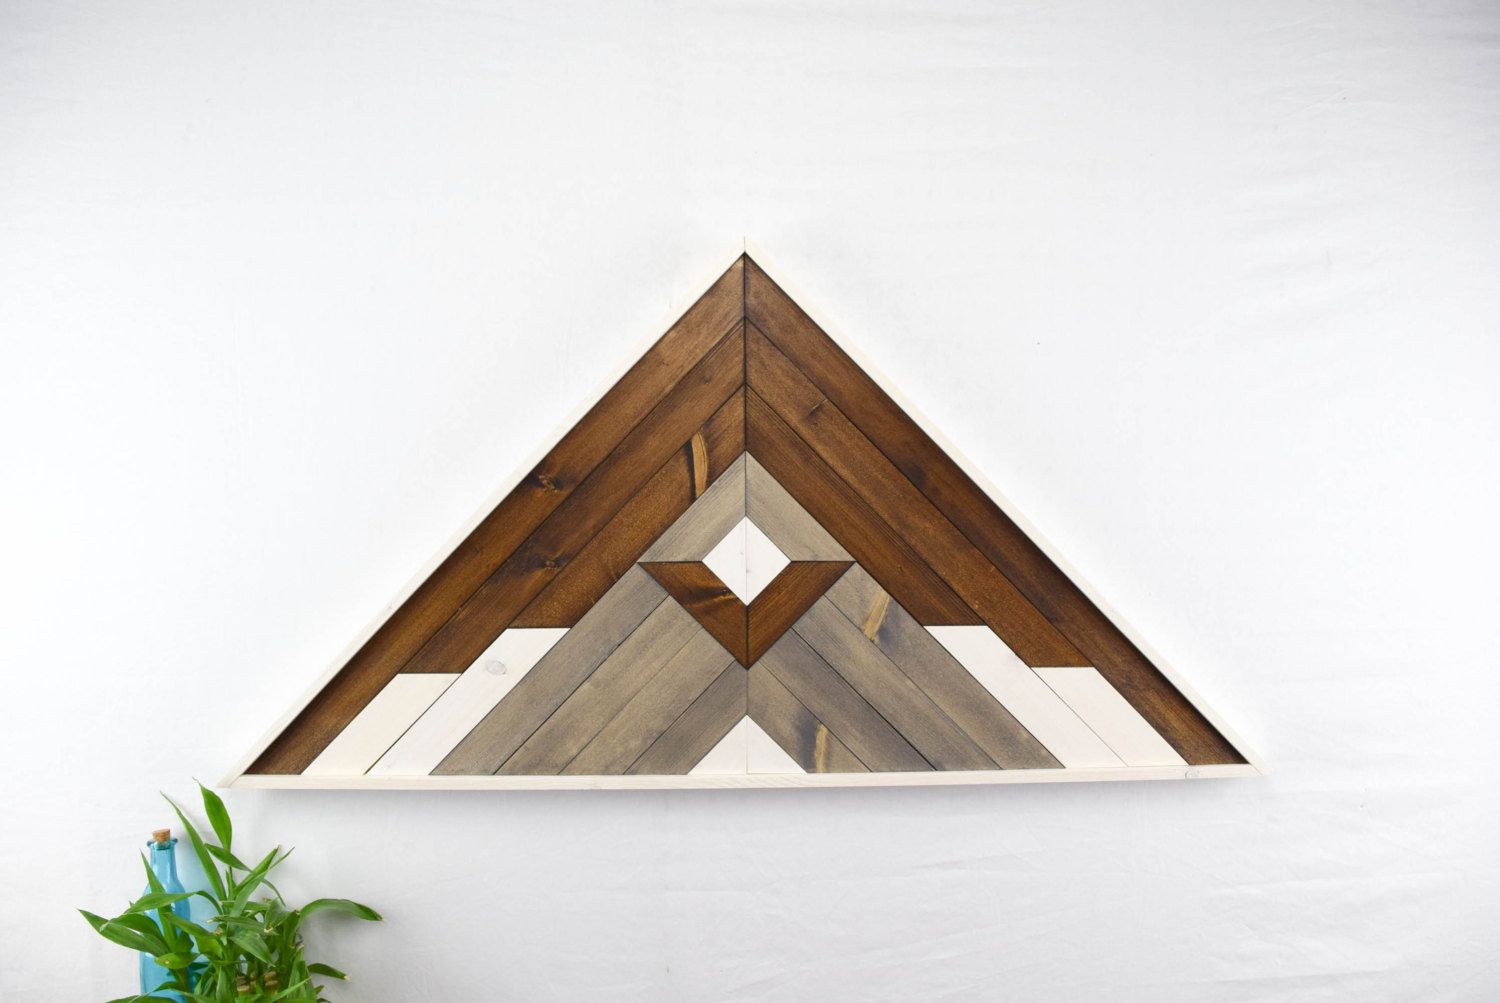 Wood Wall Art Hanging Winter Mountain Peak Design Triangle Shaped With 33 Inch Wooden Wall Art Hanging Wood Wall Art Hanging Wall Art Diy Wall Art